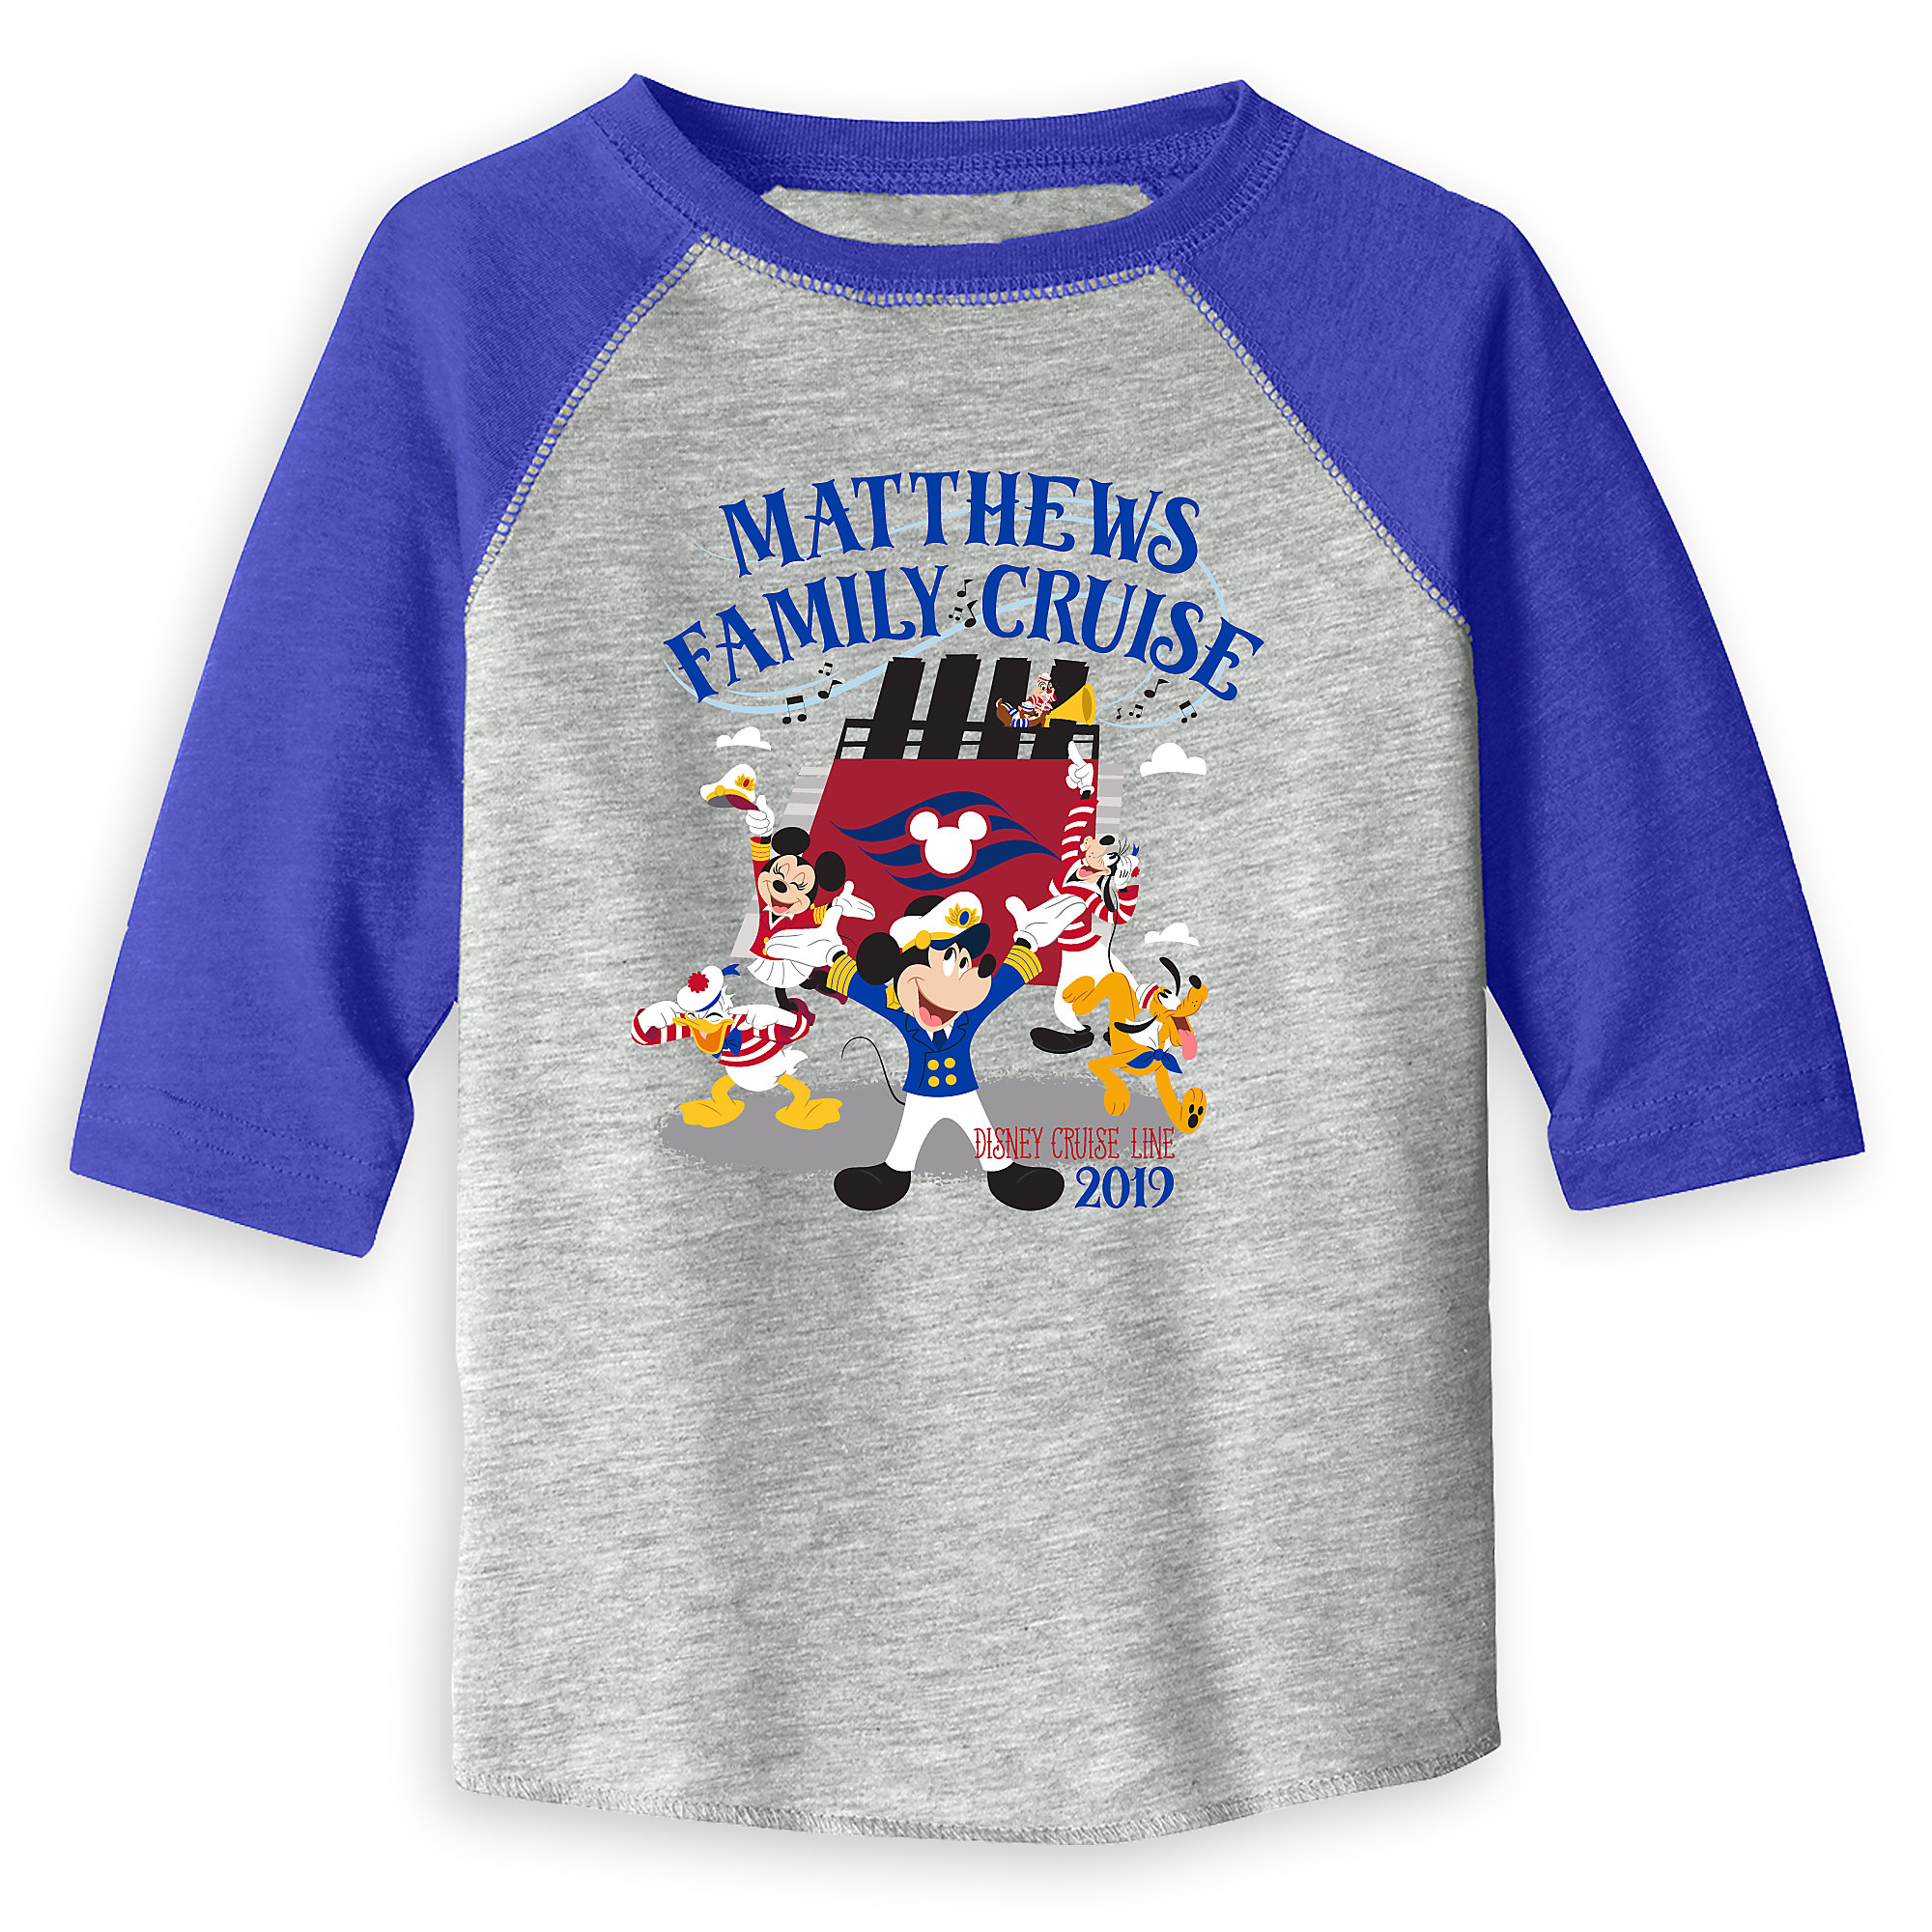 41393aaa3232 Toddlers' Captain Mickey Mouse and Crew Disney Cruise Line Family Cruise  2019 Raglan T-Shirt – Customized now available for purchase